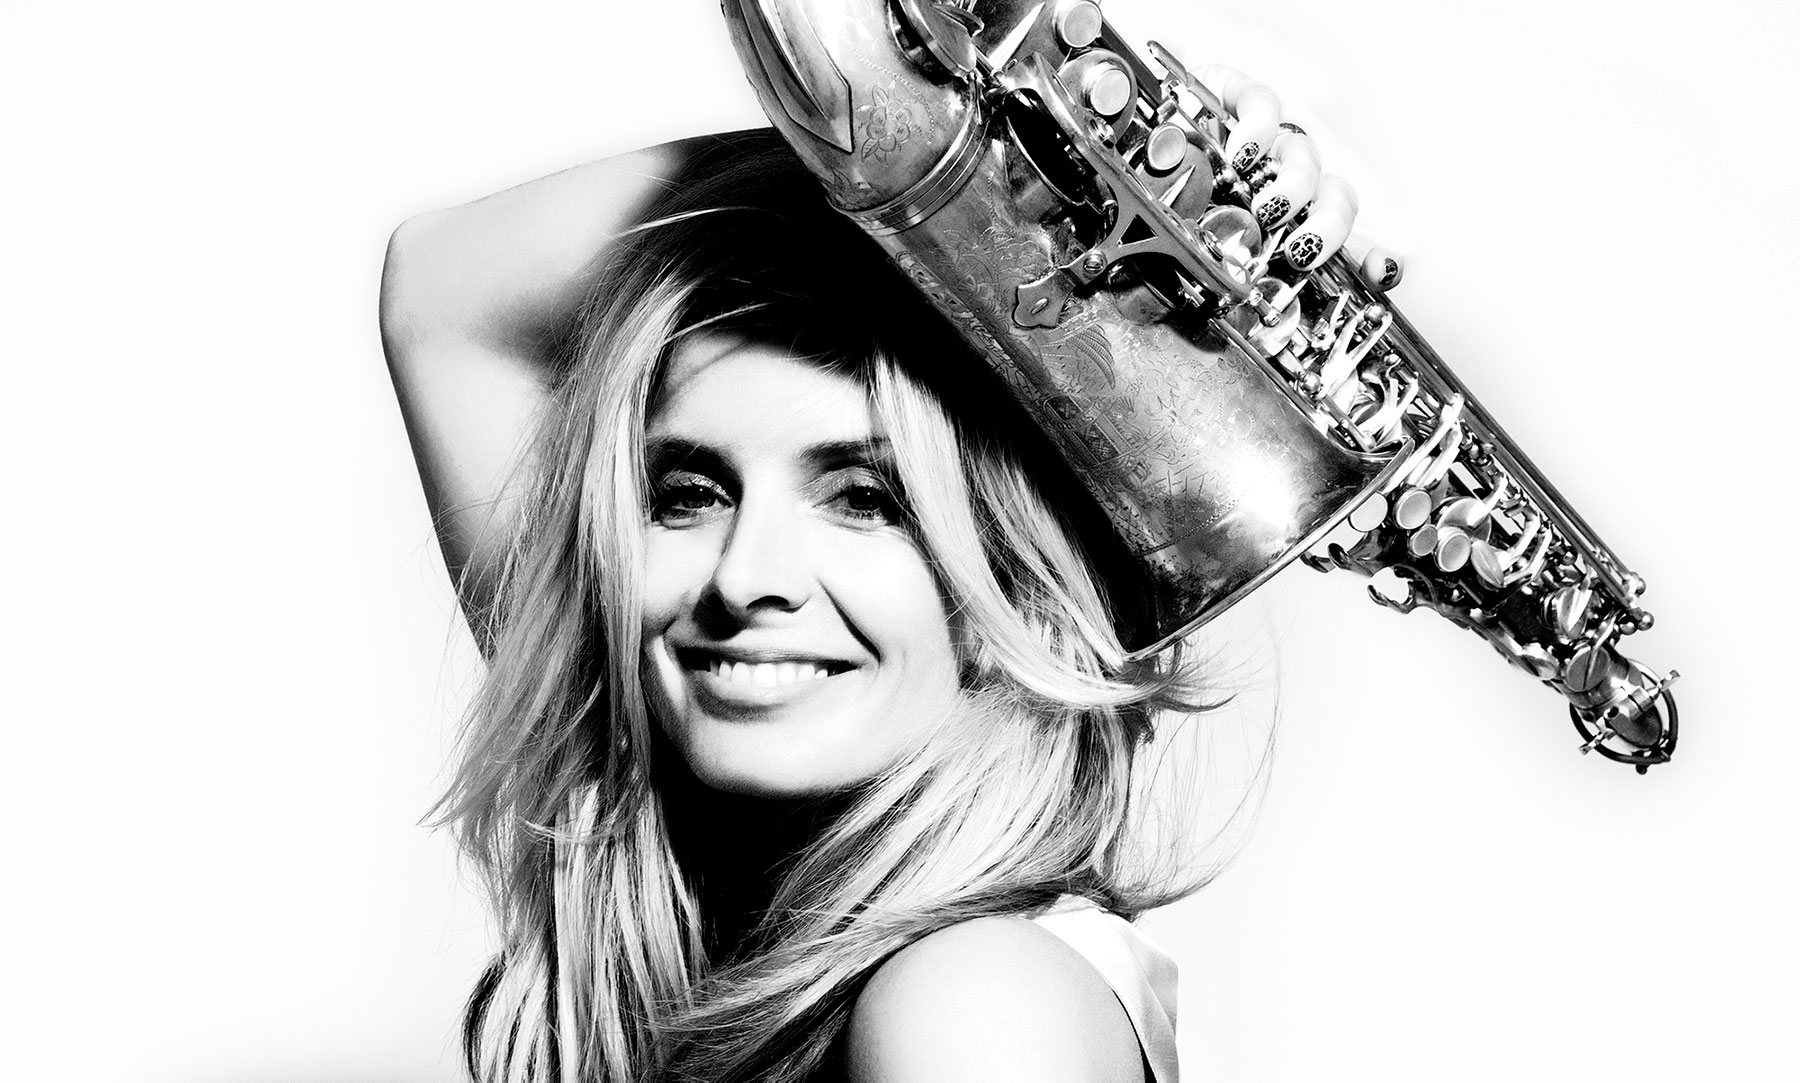 Candy Dulfer releases Crazy and chooses to play Free Wind alto